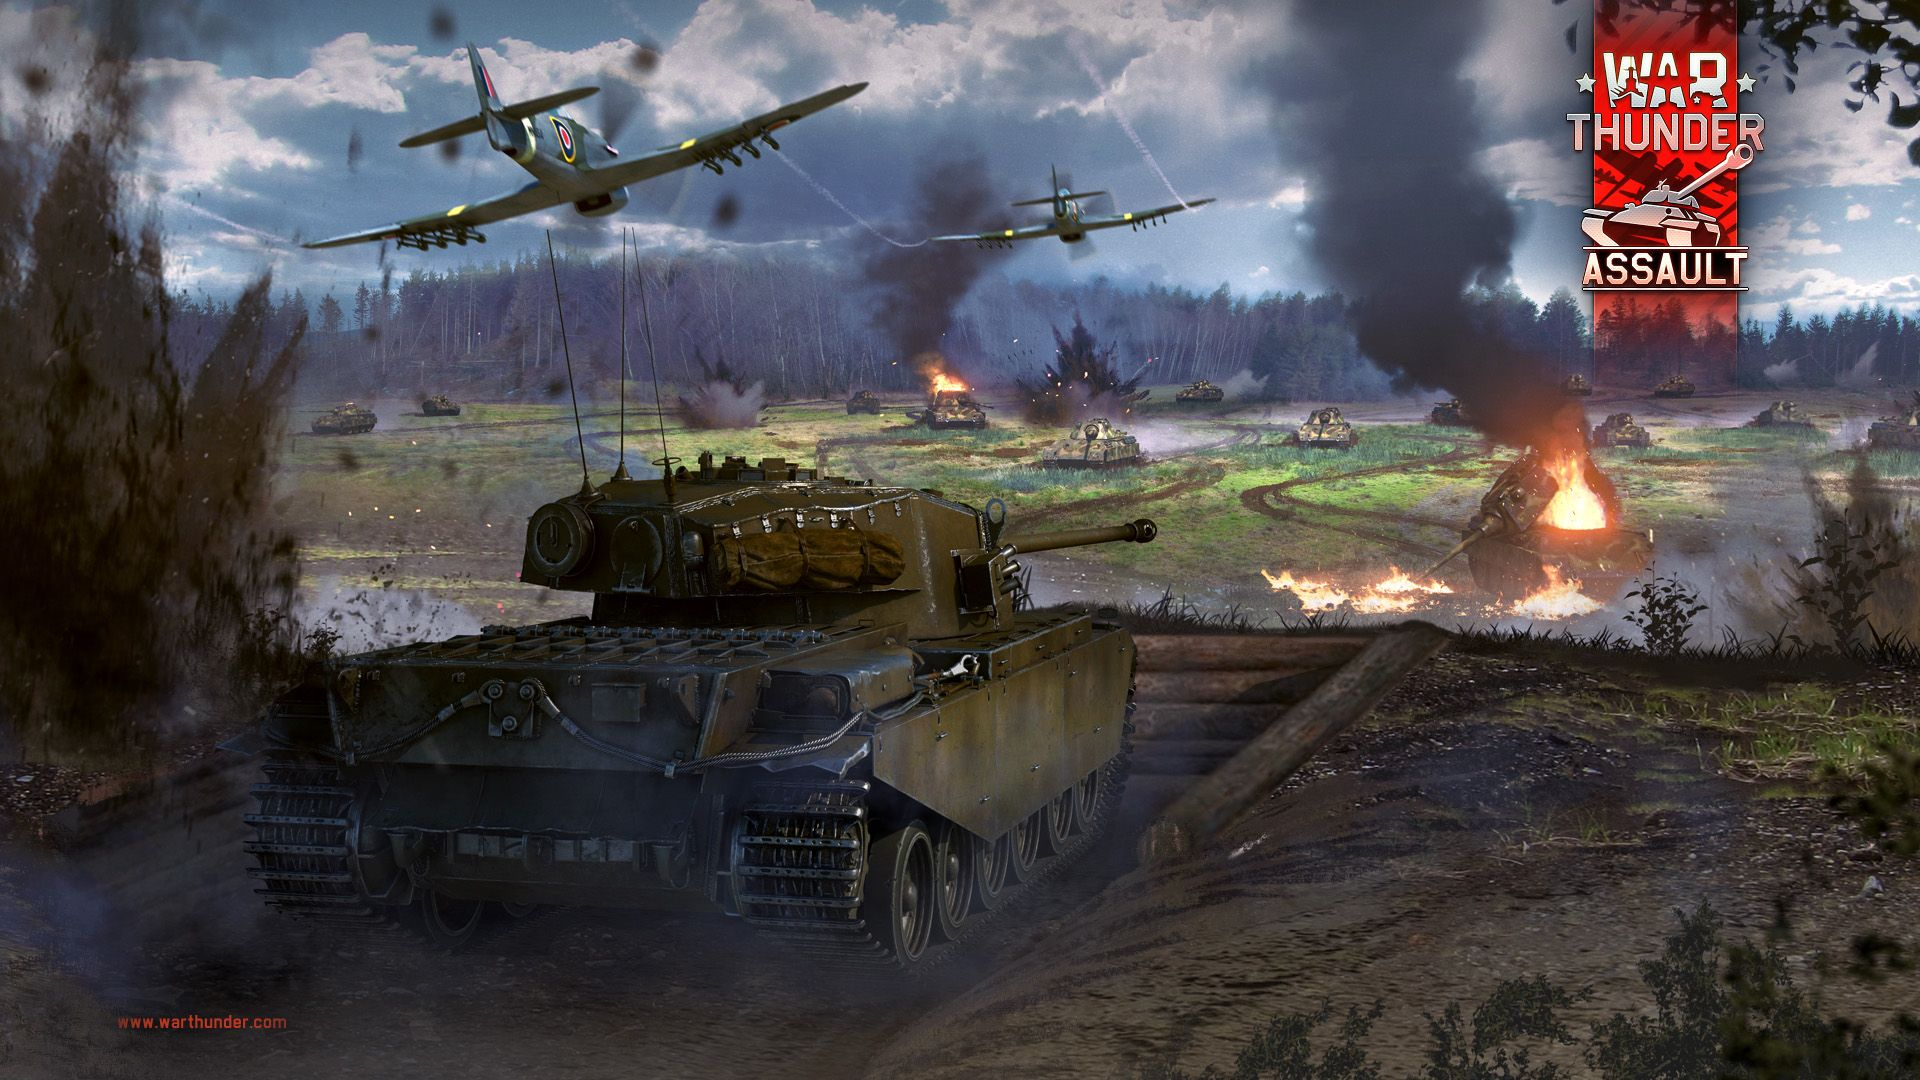 3d Fire Name Wallpaper New Content Update For War Thunder 1 67 Assault